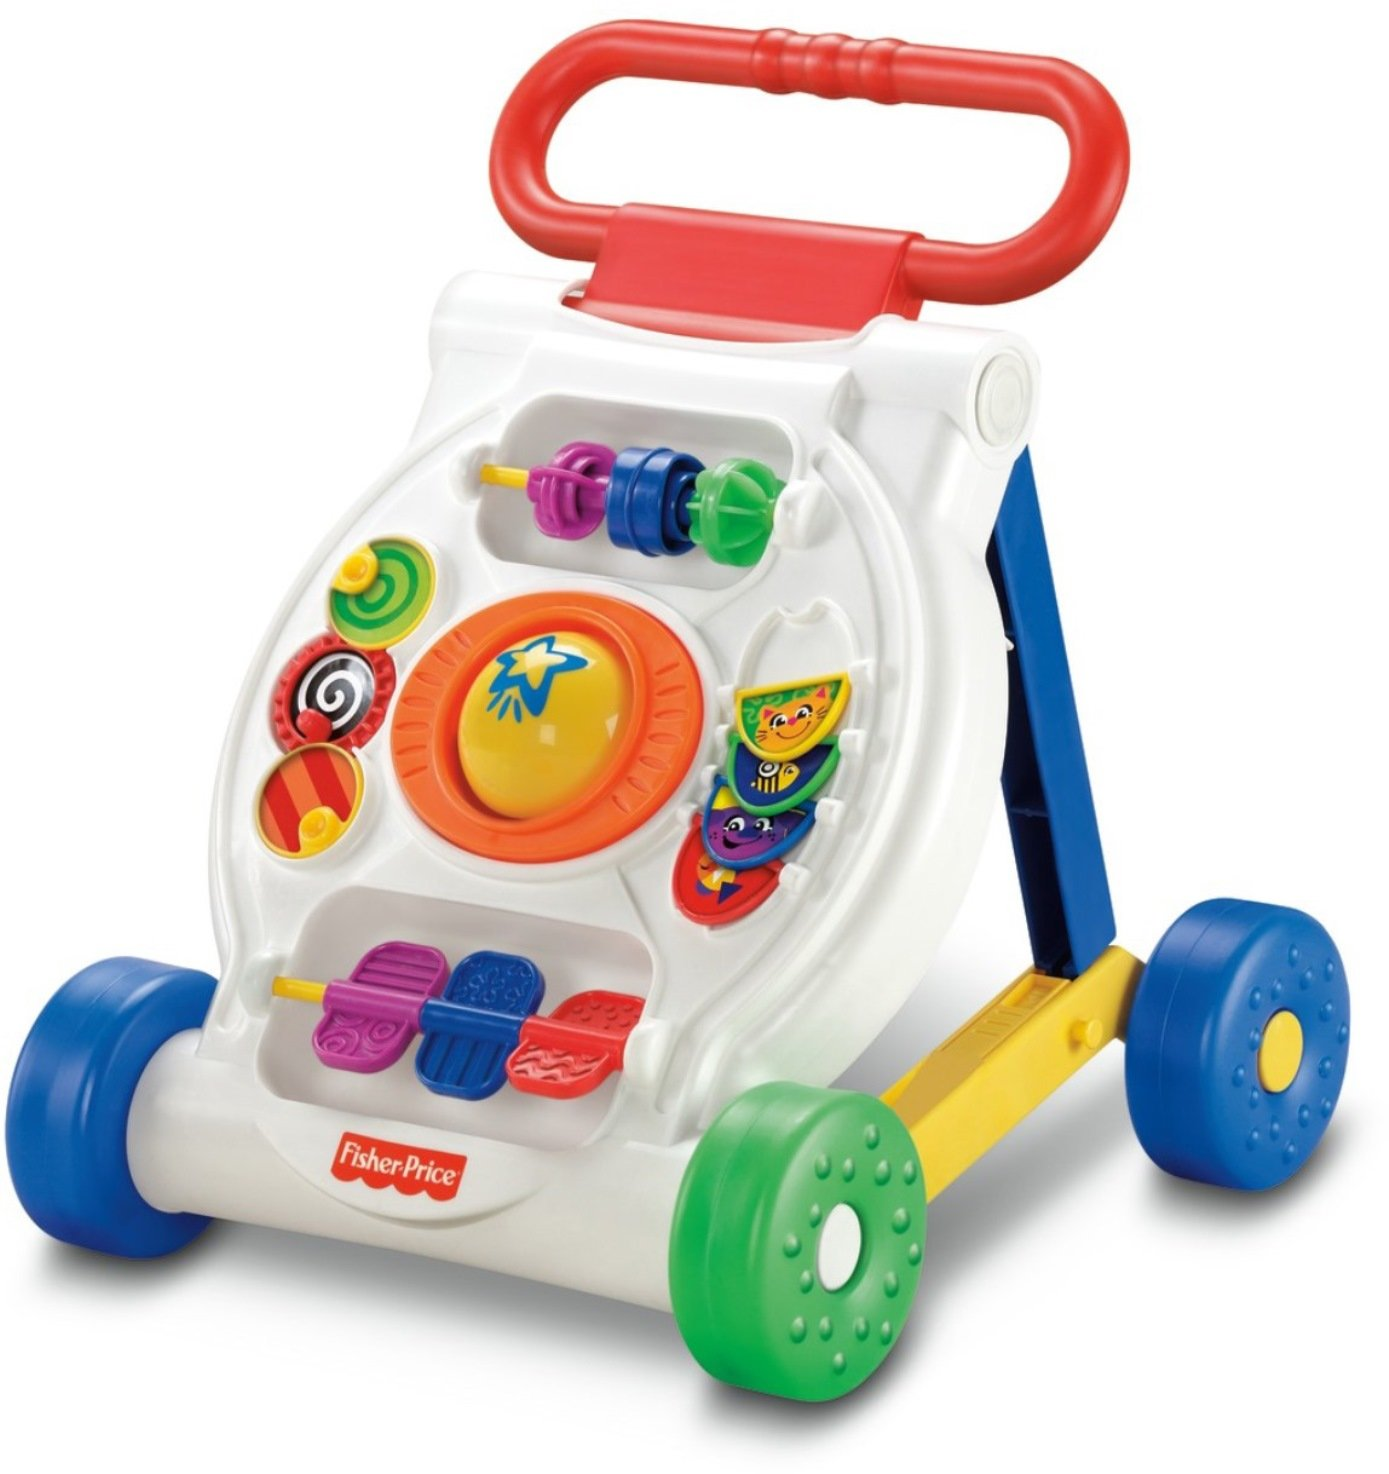 Amazon.com: Fisher-Price Activity Walker: Toys & Games